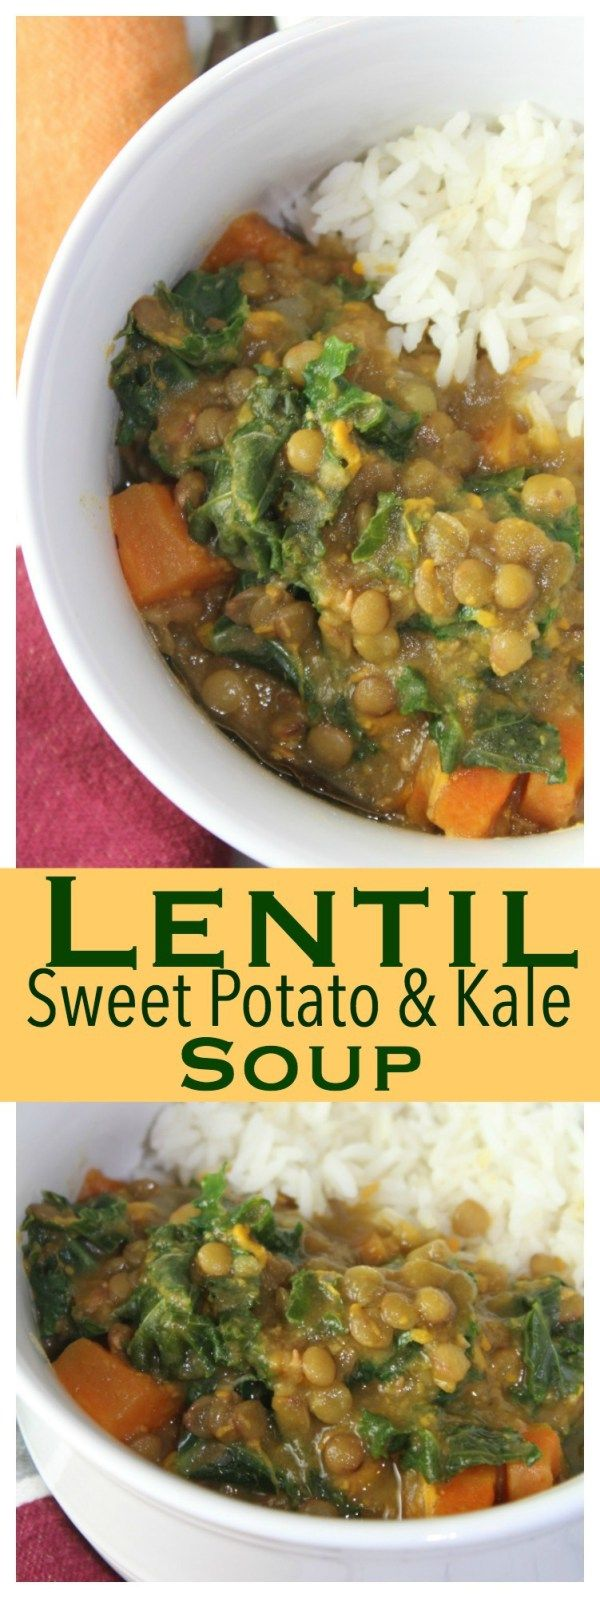 Lentil, Sweet Potato & Kale Soup - a SUPER easy, one pot dish you can make in less than 30 minutes!